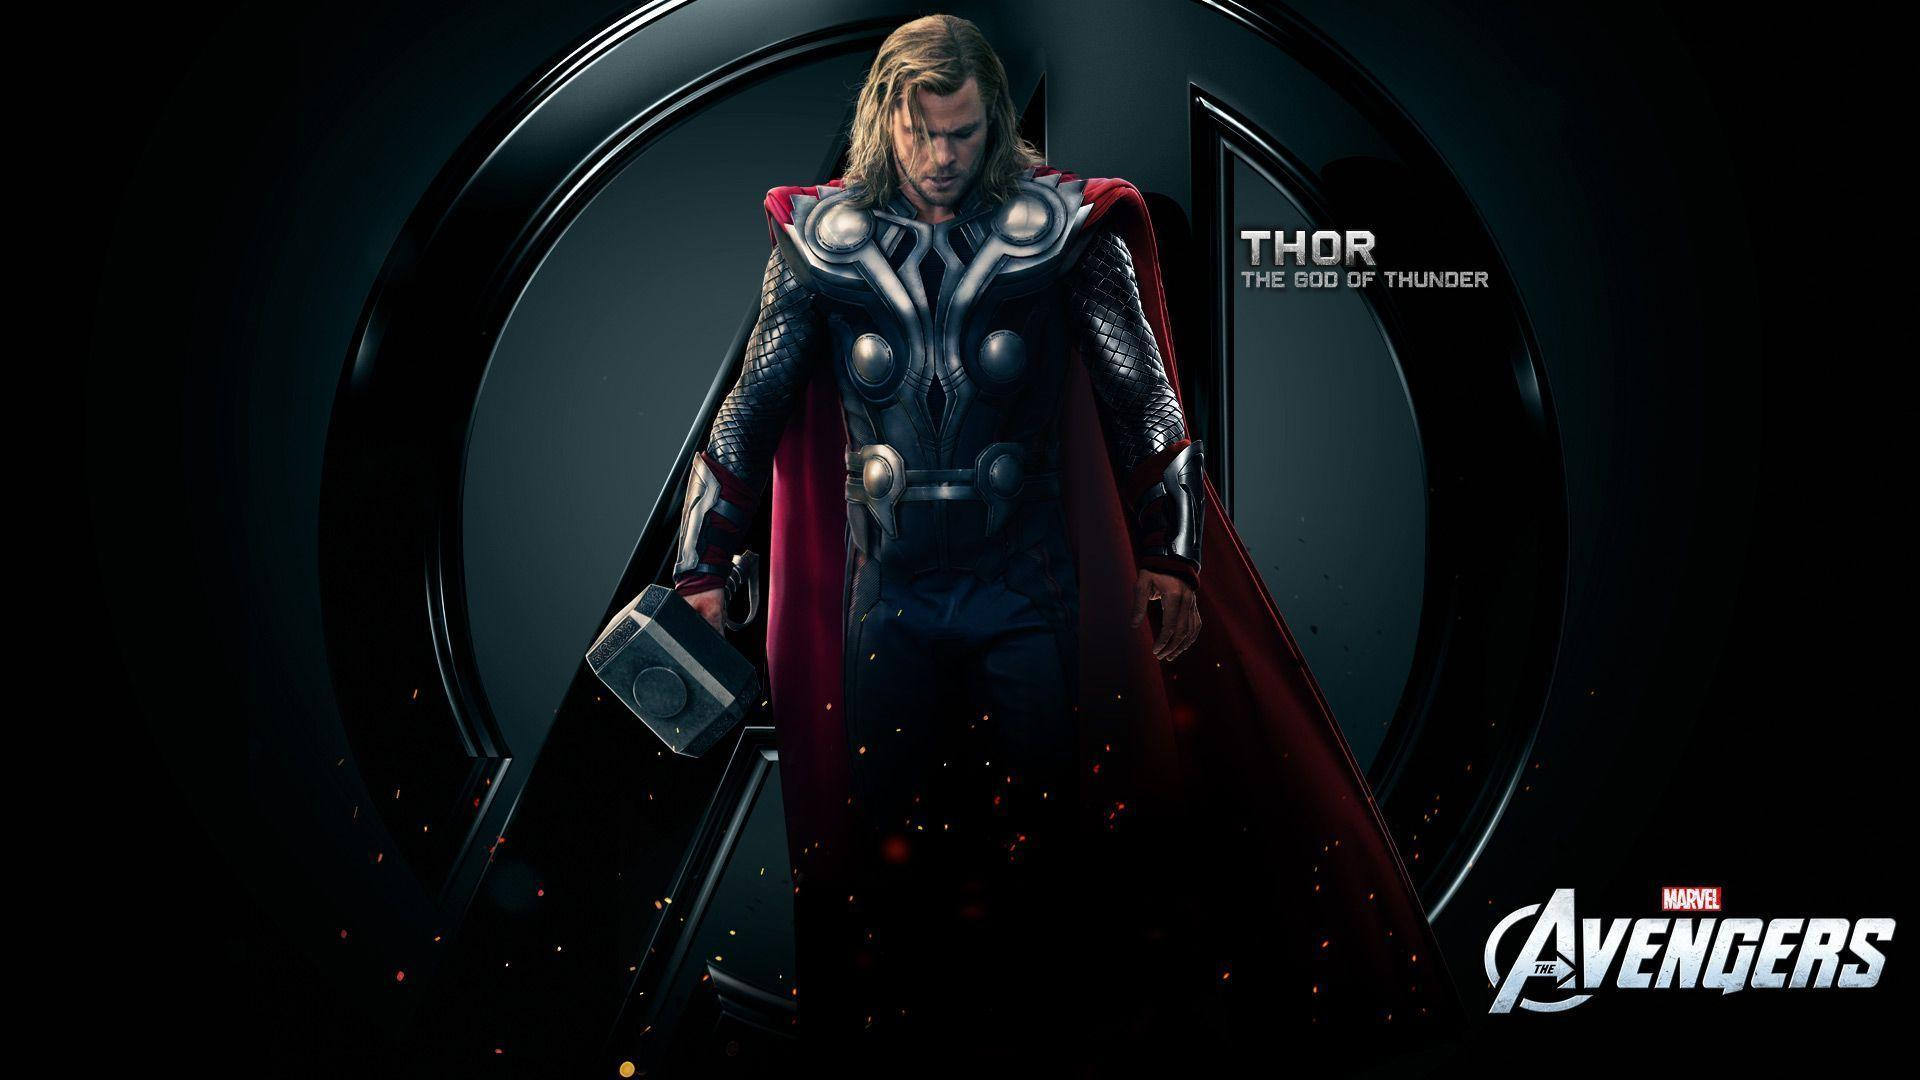 Wallpapers Tagged With THOR